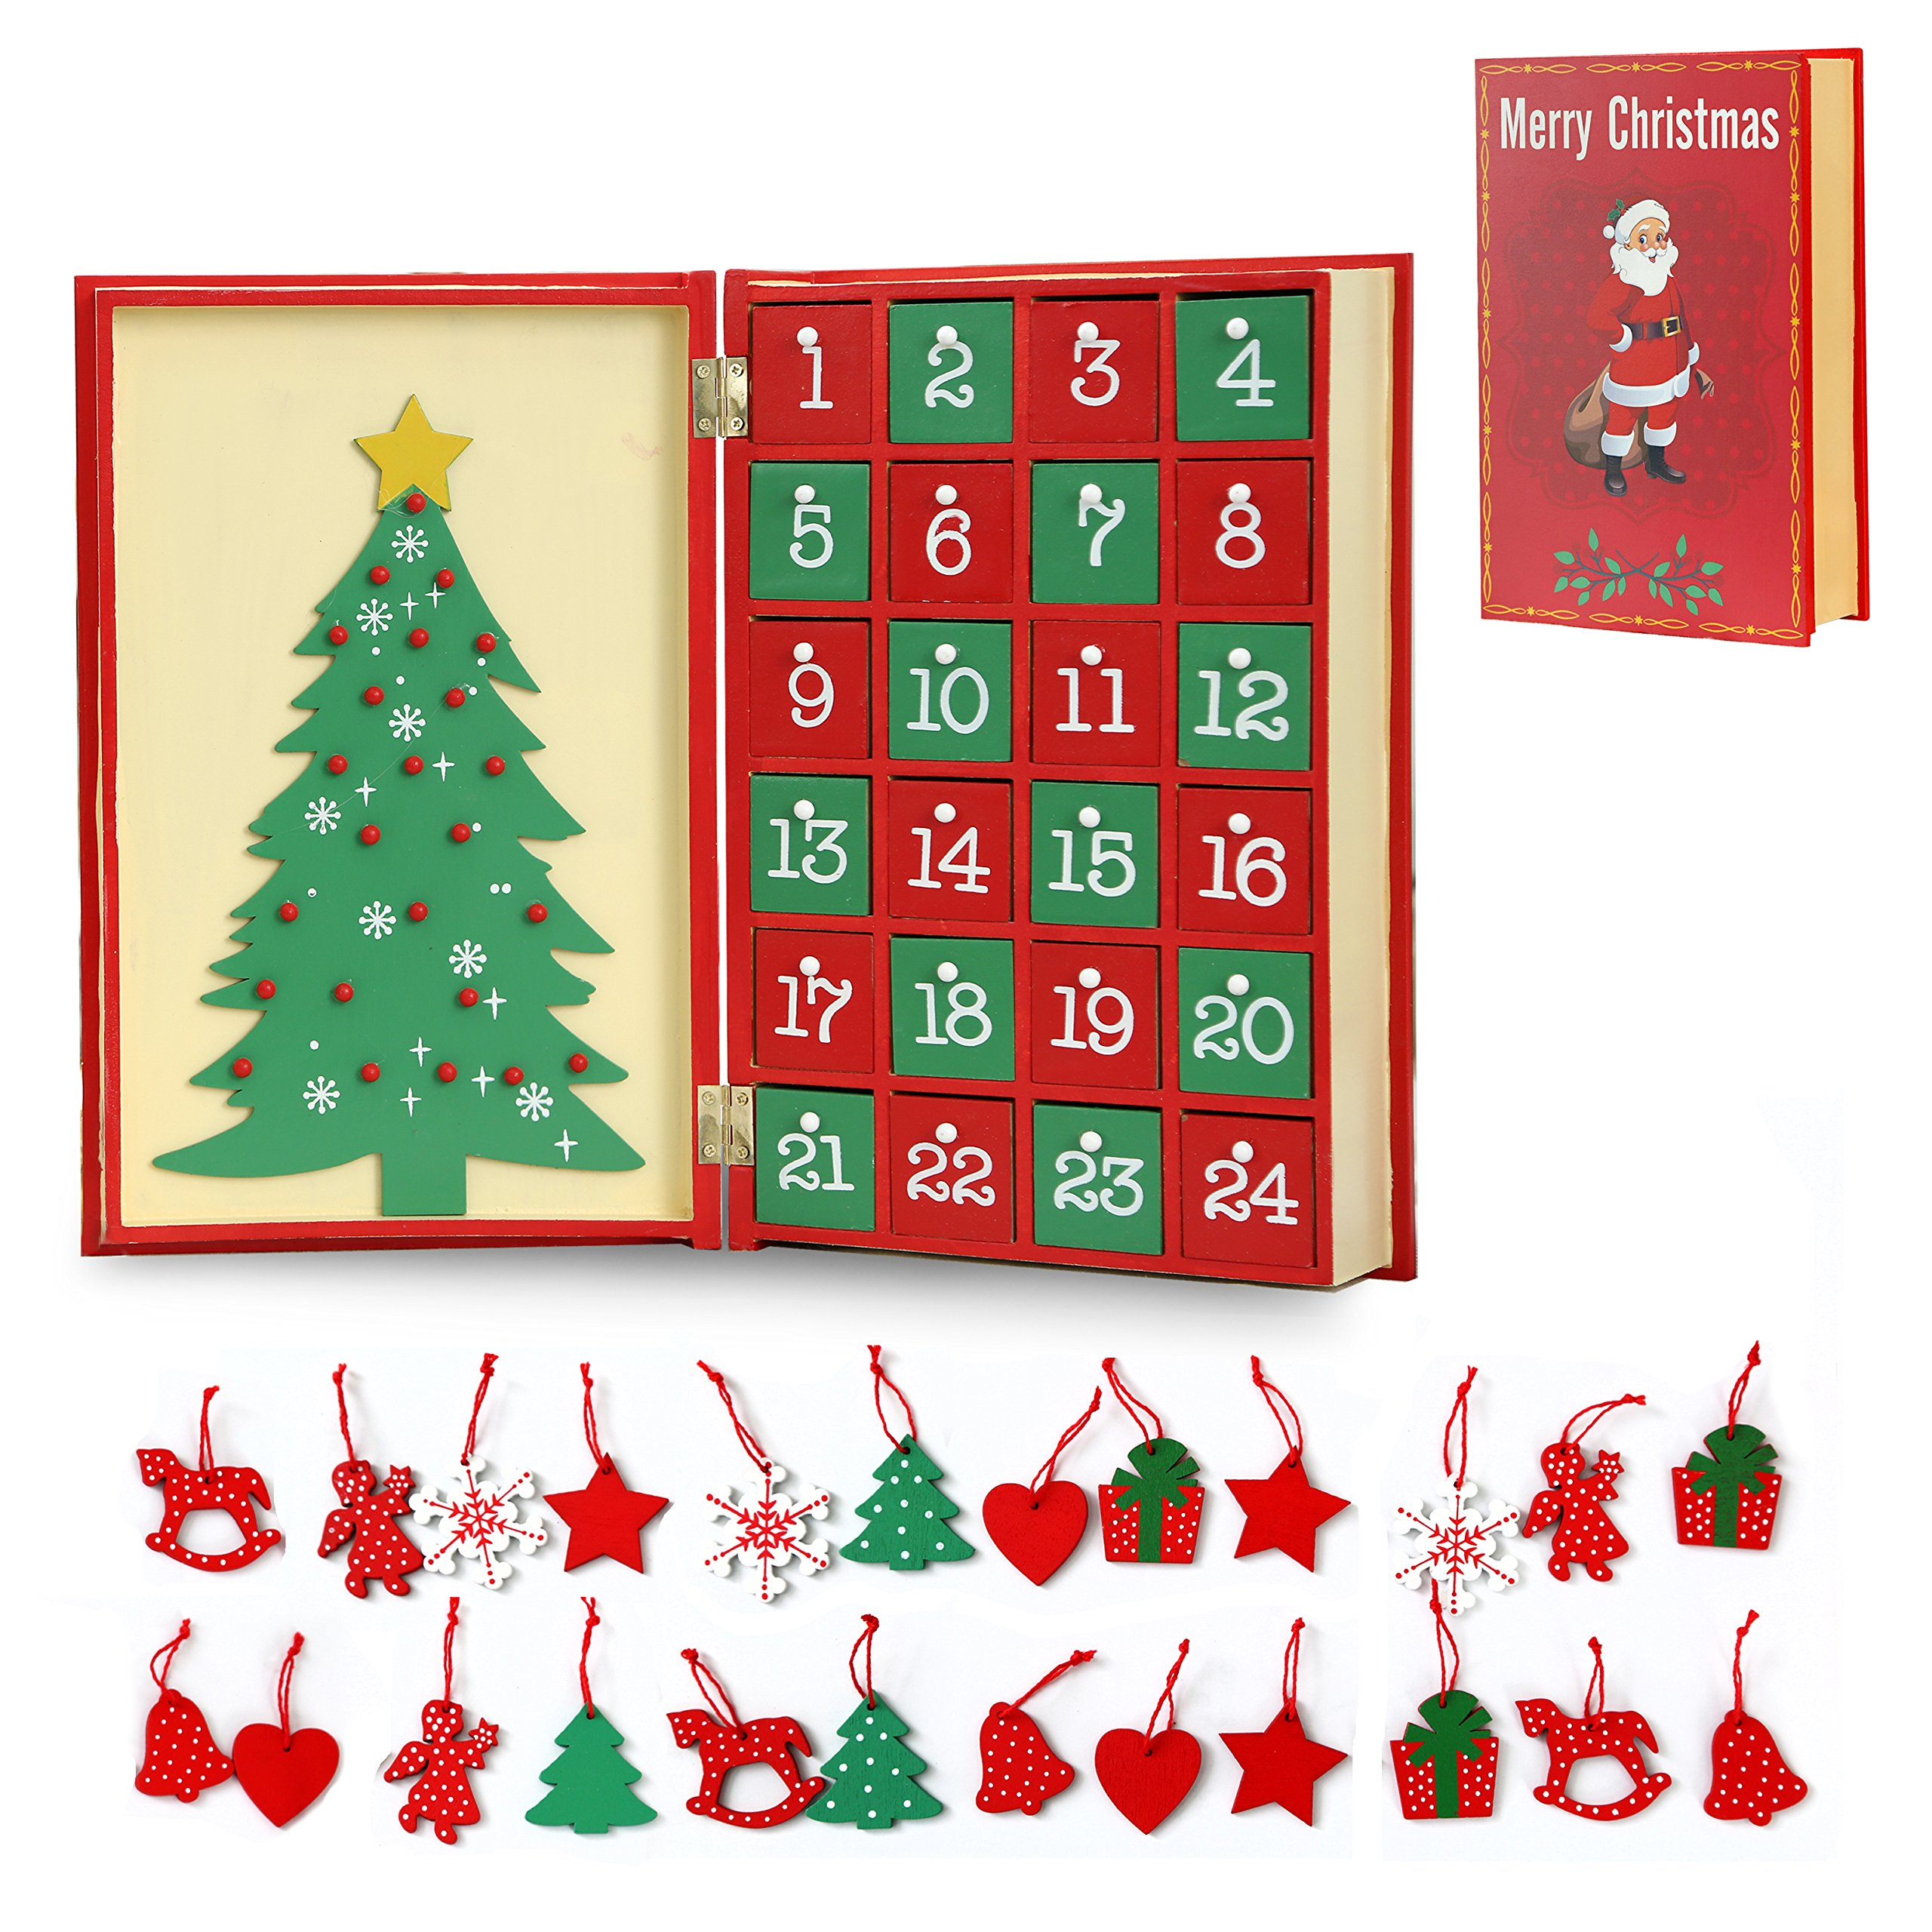 Christmas Wooden Santa Claus Advent Calendar Book with 24 Hanging Ornaments to Decorate Tree on the Second Page